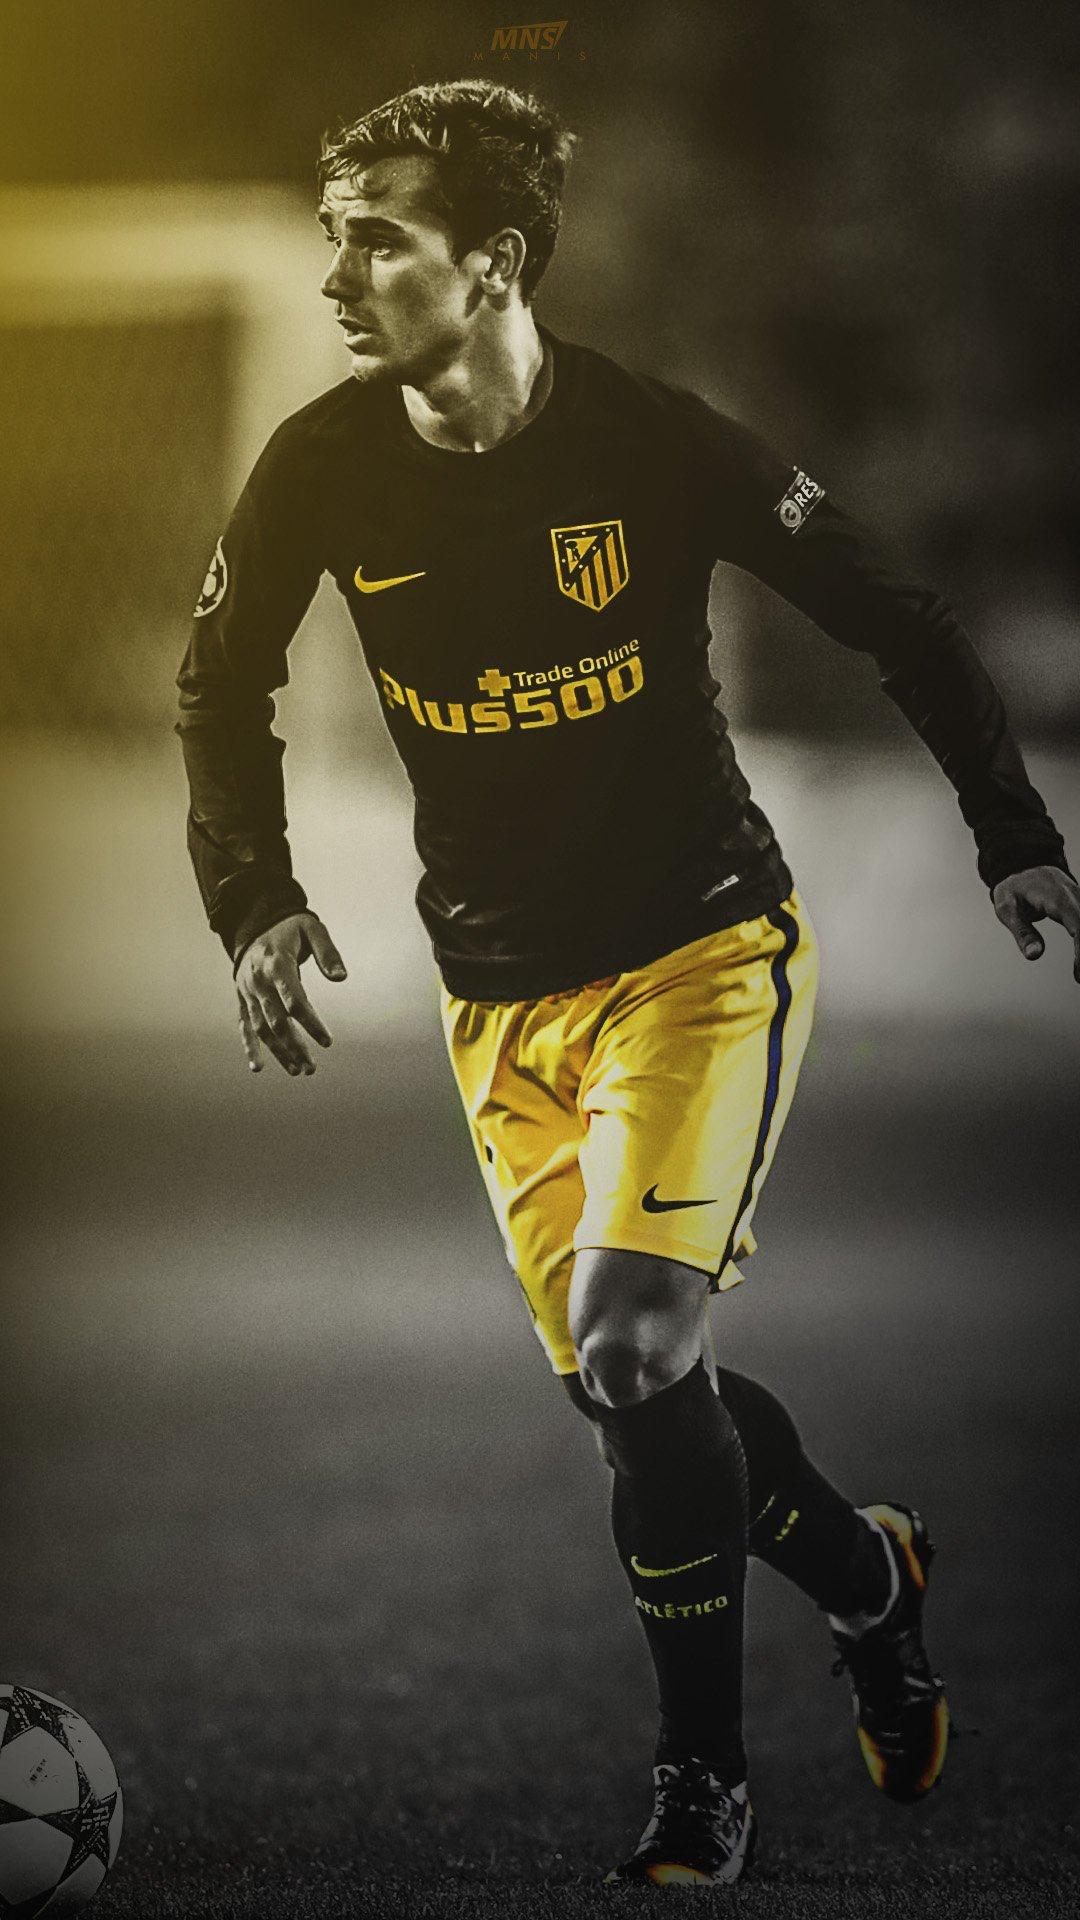 Antoine griezmann atletico madrid world soccer pinterest antoine griezmann atletico madrid voltagebd Image collections